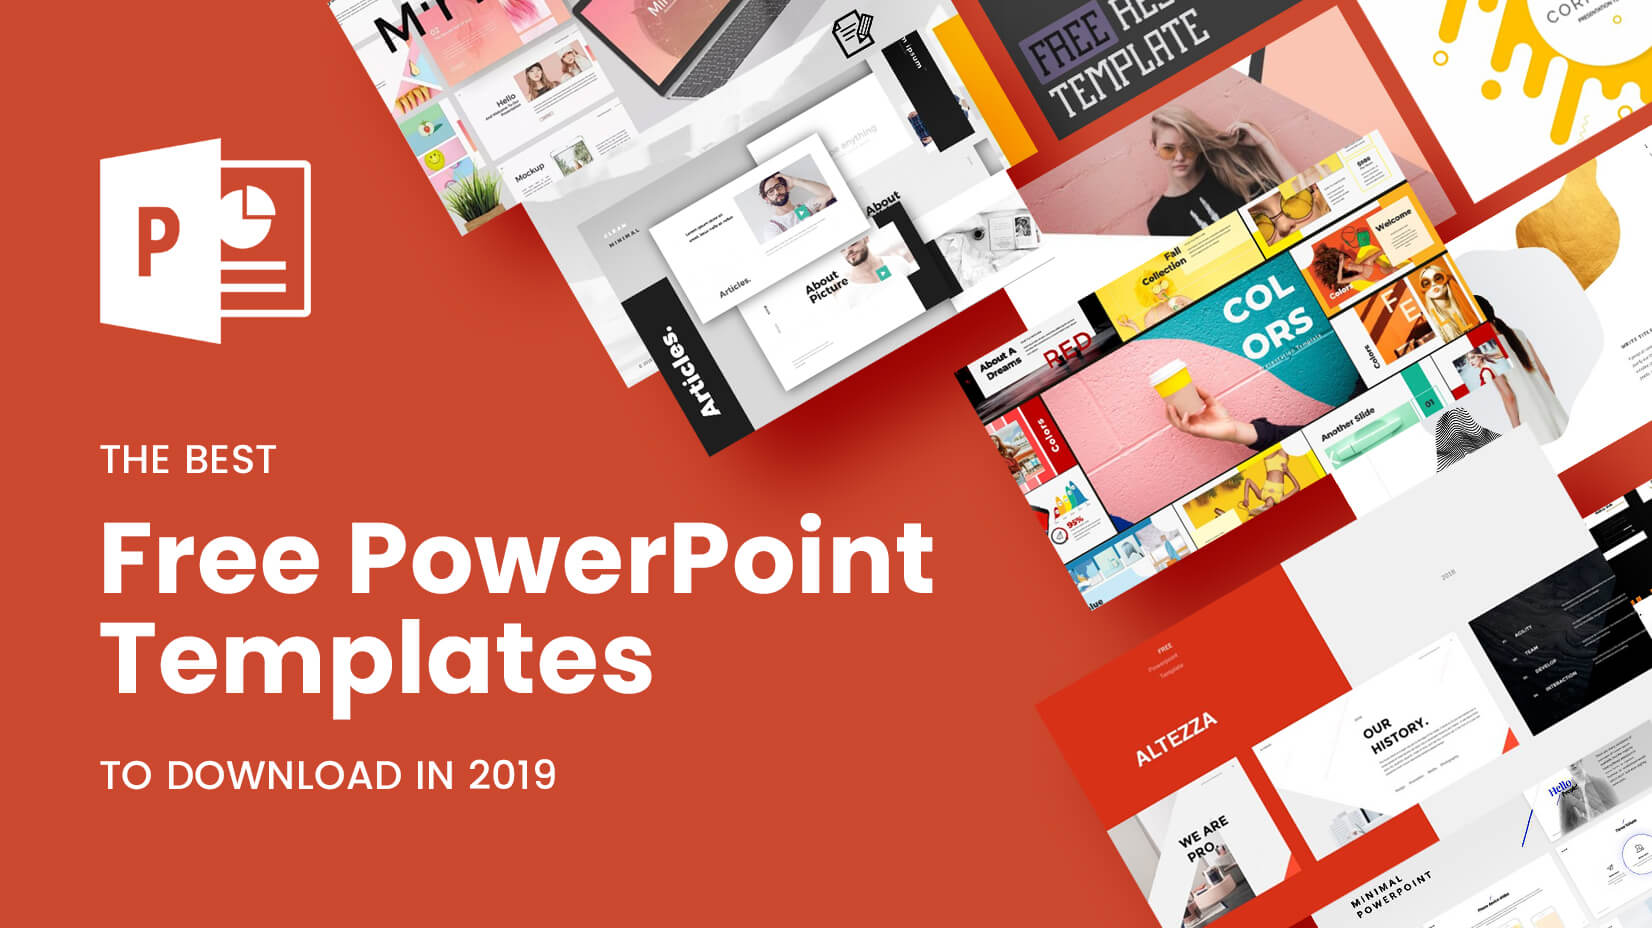 Desenhos Gratuitos Para Baixar: The Best Free PowerPoint Templates To Download In 2019